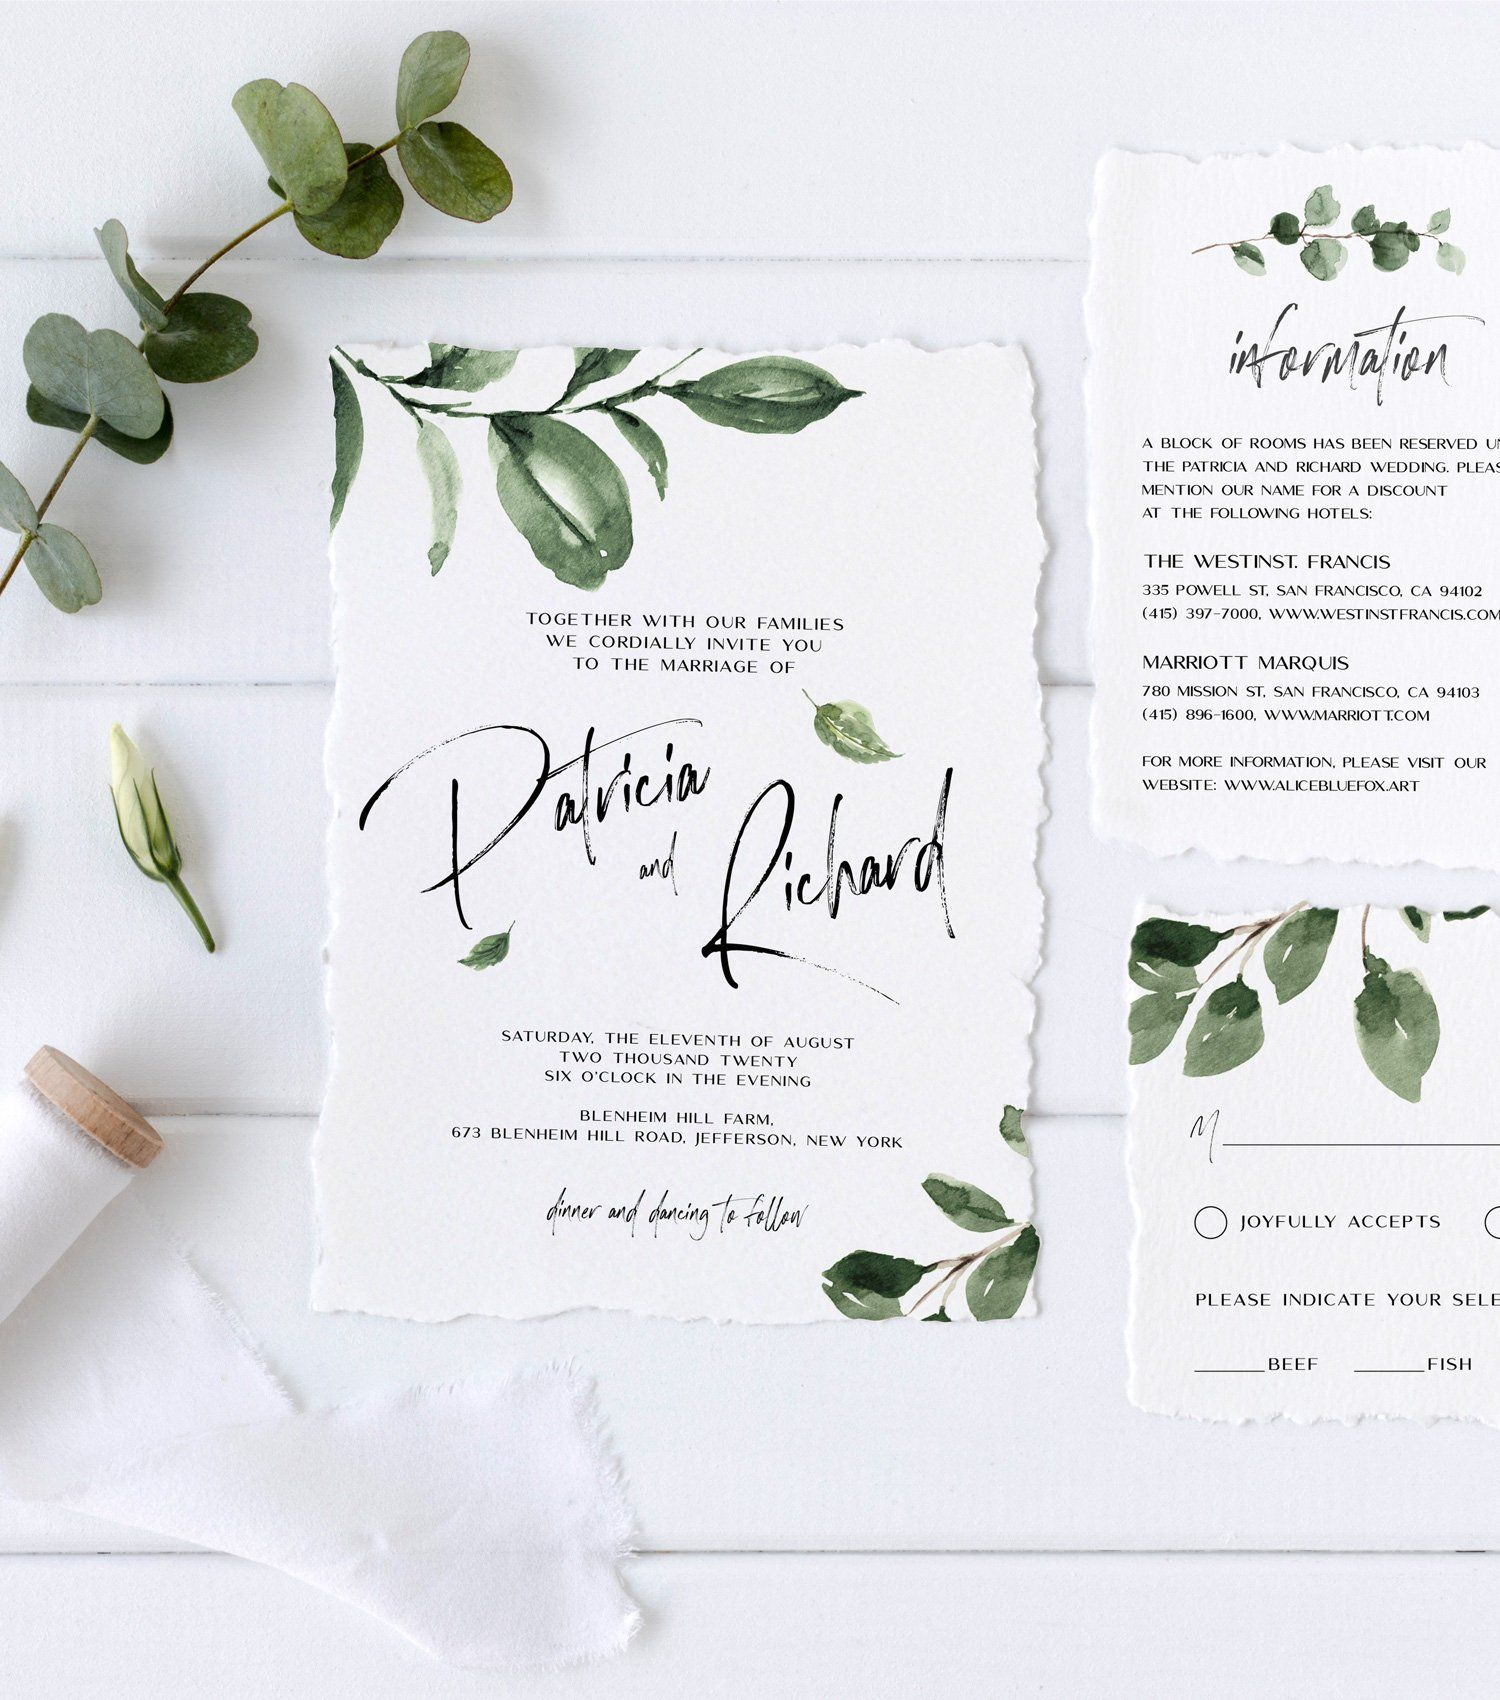 Wedding Invitation Suite with HandPainted Watercolor Greenery, Details Card, RSVP Card, Envelope Liner, Editable Template, AB15 01 000 is part of Wedding invitation suite - items search query AB15 01 HOW TO USE  •  Just minutes after purchase, you'll get access to your purchased template  •  Follow the link to access your template  •  Make all your changes to the template, save and download  •  Print on your Home Printer or send them to professional Print Shop  WHERE TO PRINT  Home Printer, Professional Print Shop, Online Print Shop or any Local Print Shop  For printing you can use PDF, JPG or PNG files  NEED HELP OR CUSTOMIZATIONS   Please contact us via contact form or visit our website www alicebluefox art  IMPORTANT NOTES  •  DON'T edit the files on Mobile or Tablet devices  •  Use Desktop computer or Laptop only  •  Heavy card stock or watercolor paper recommended  •  Before final printing, we recommend to make a test print to ensure that you like everything (print quality, colors, etc )  TERMS OF USE  You can use this Product for personal purposes only  To learn more about License, please see our FAQ  If you have any questions regarding this Product, please write us back, we will be happy to help you! [id1188020,1188028,1188037,1184426]